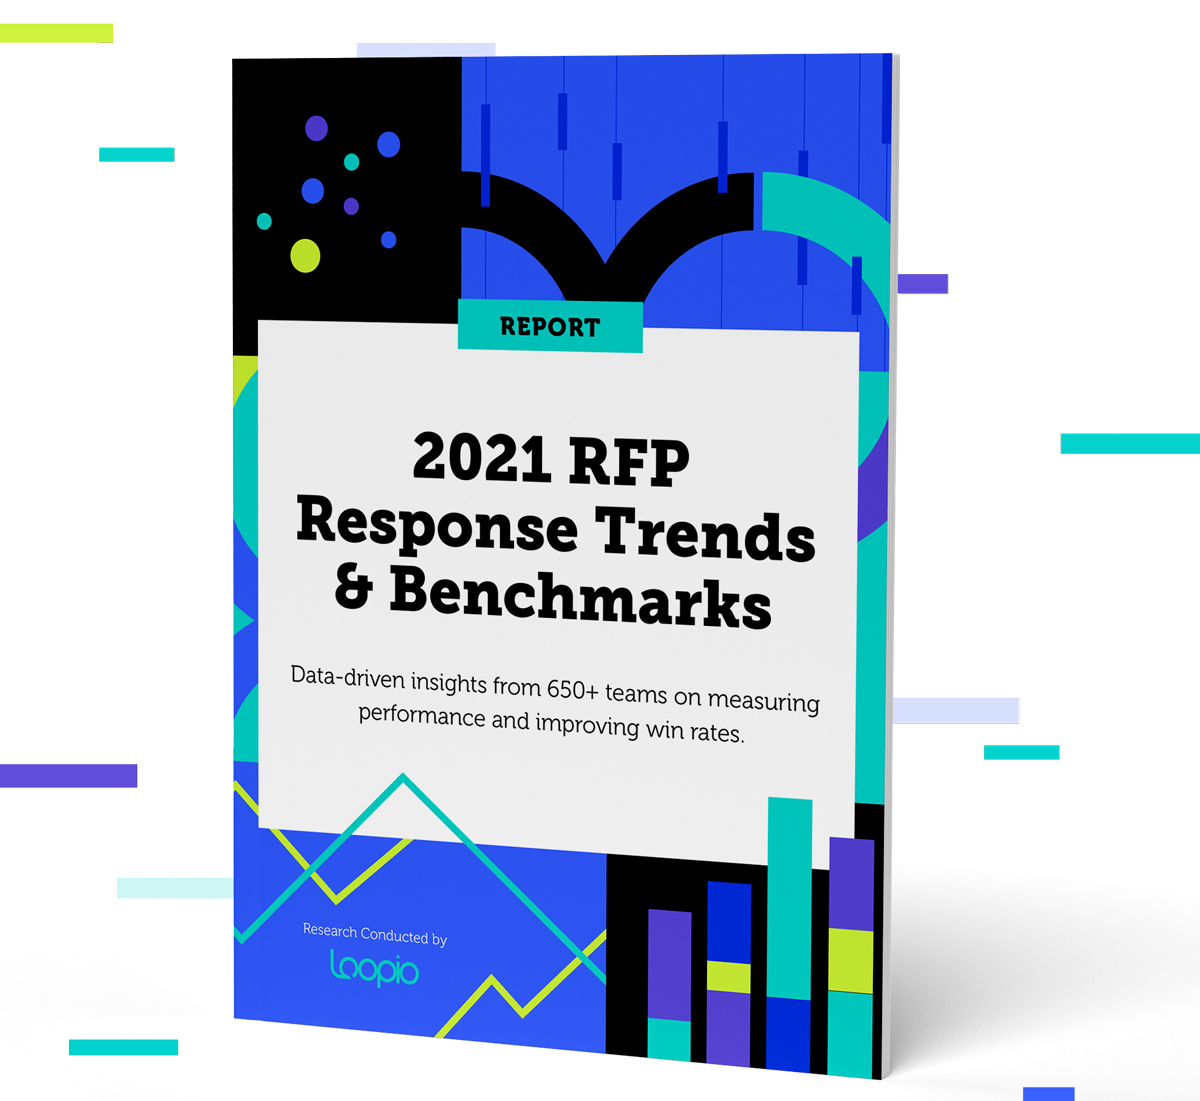 2021 RFP Response Trends & Benchmarks Report